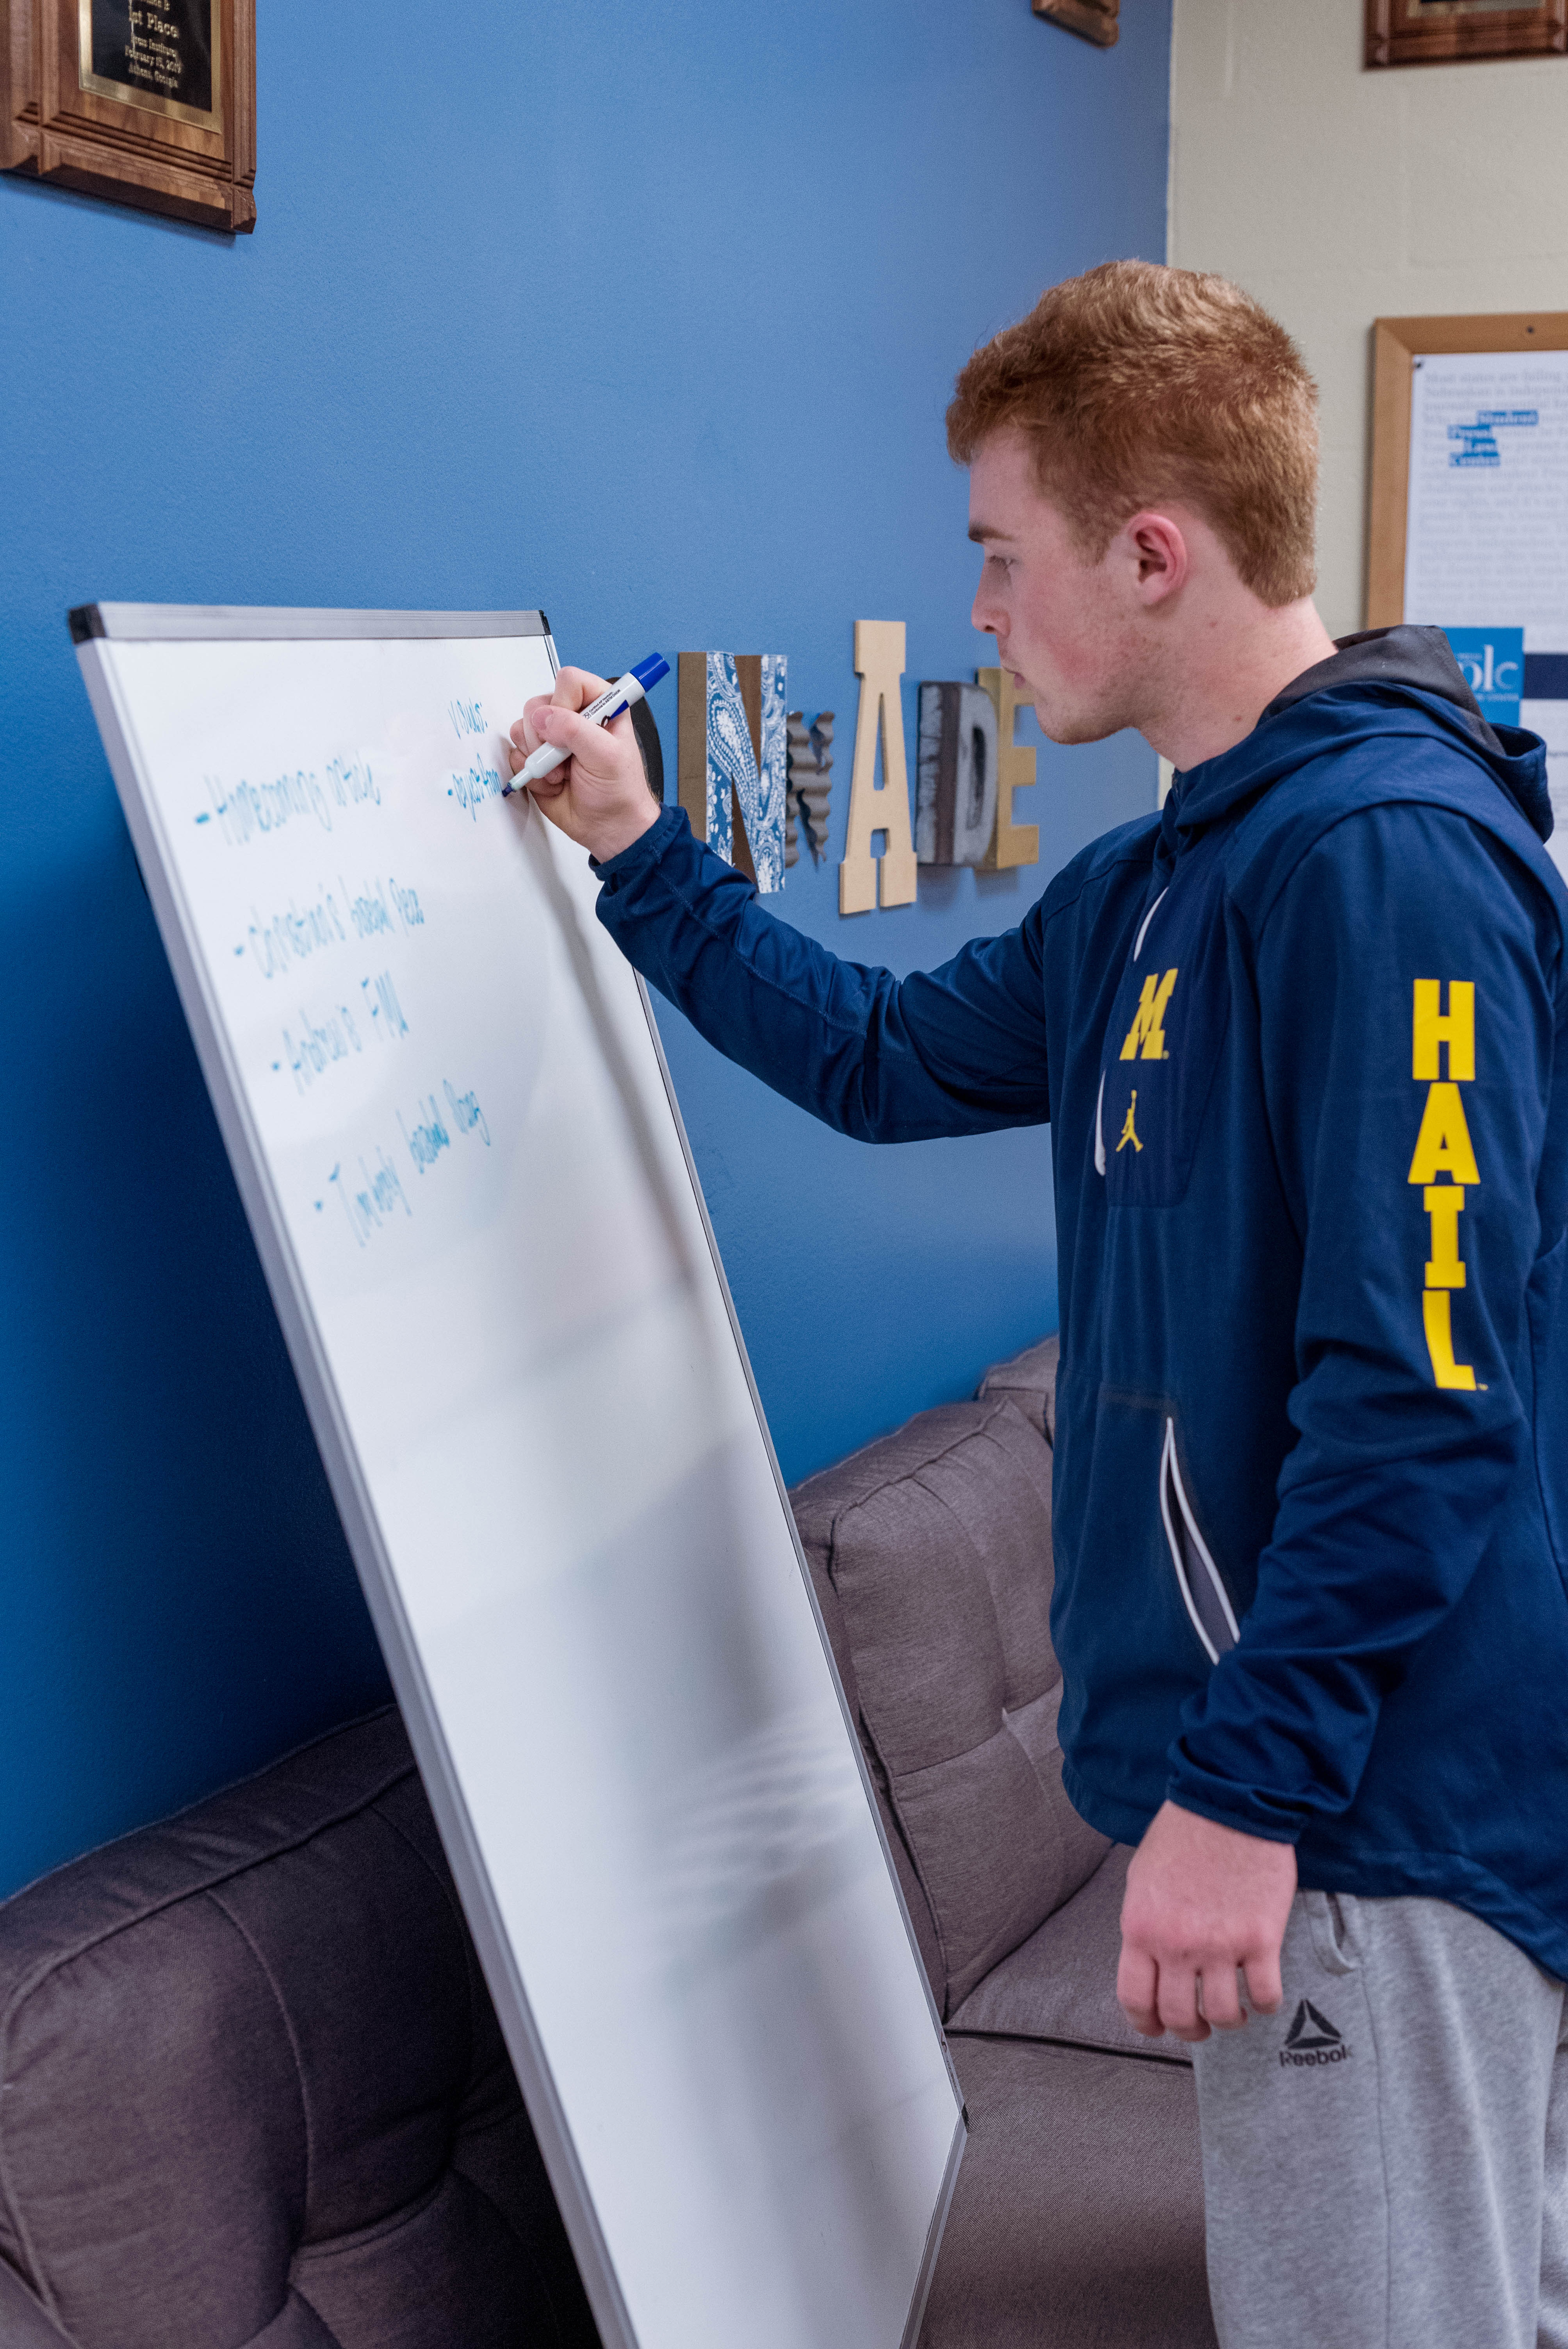 Sophomore Mass Communication major, Eric Boyd, uses the white board to layout a story for a future issue